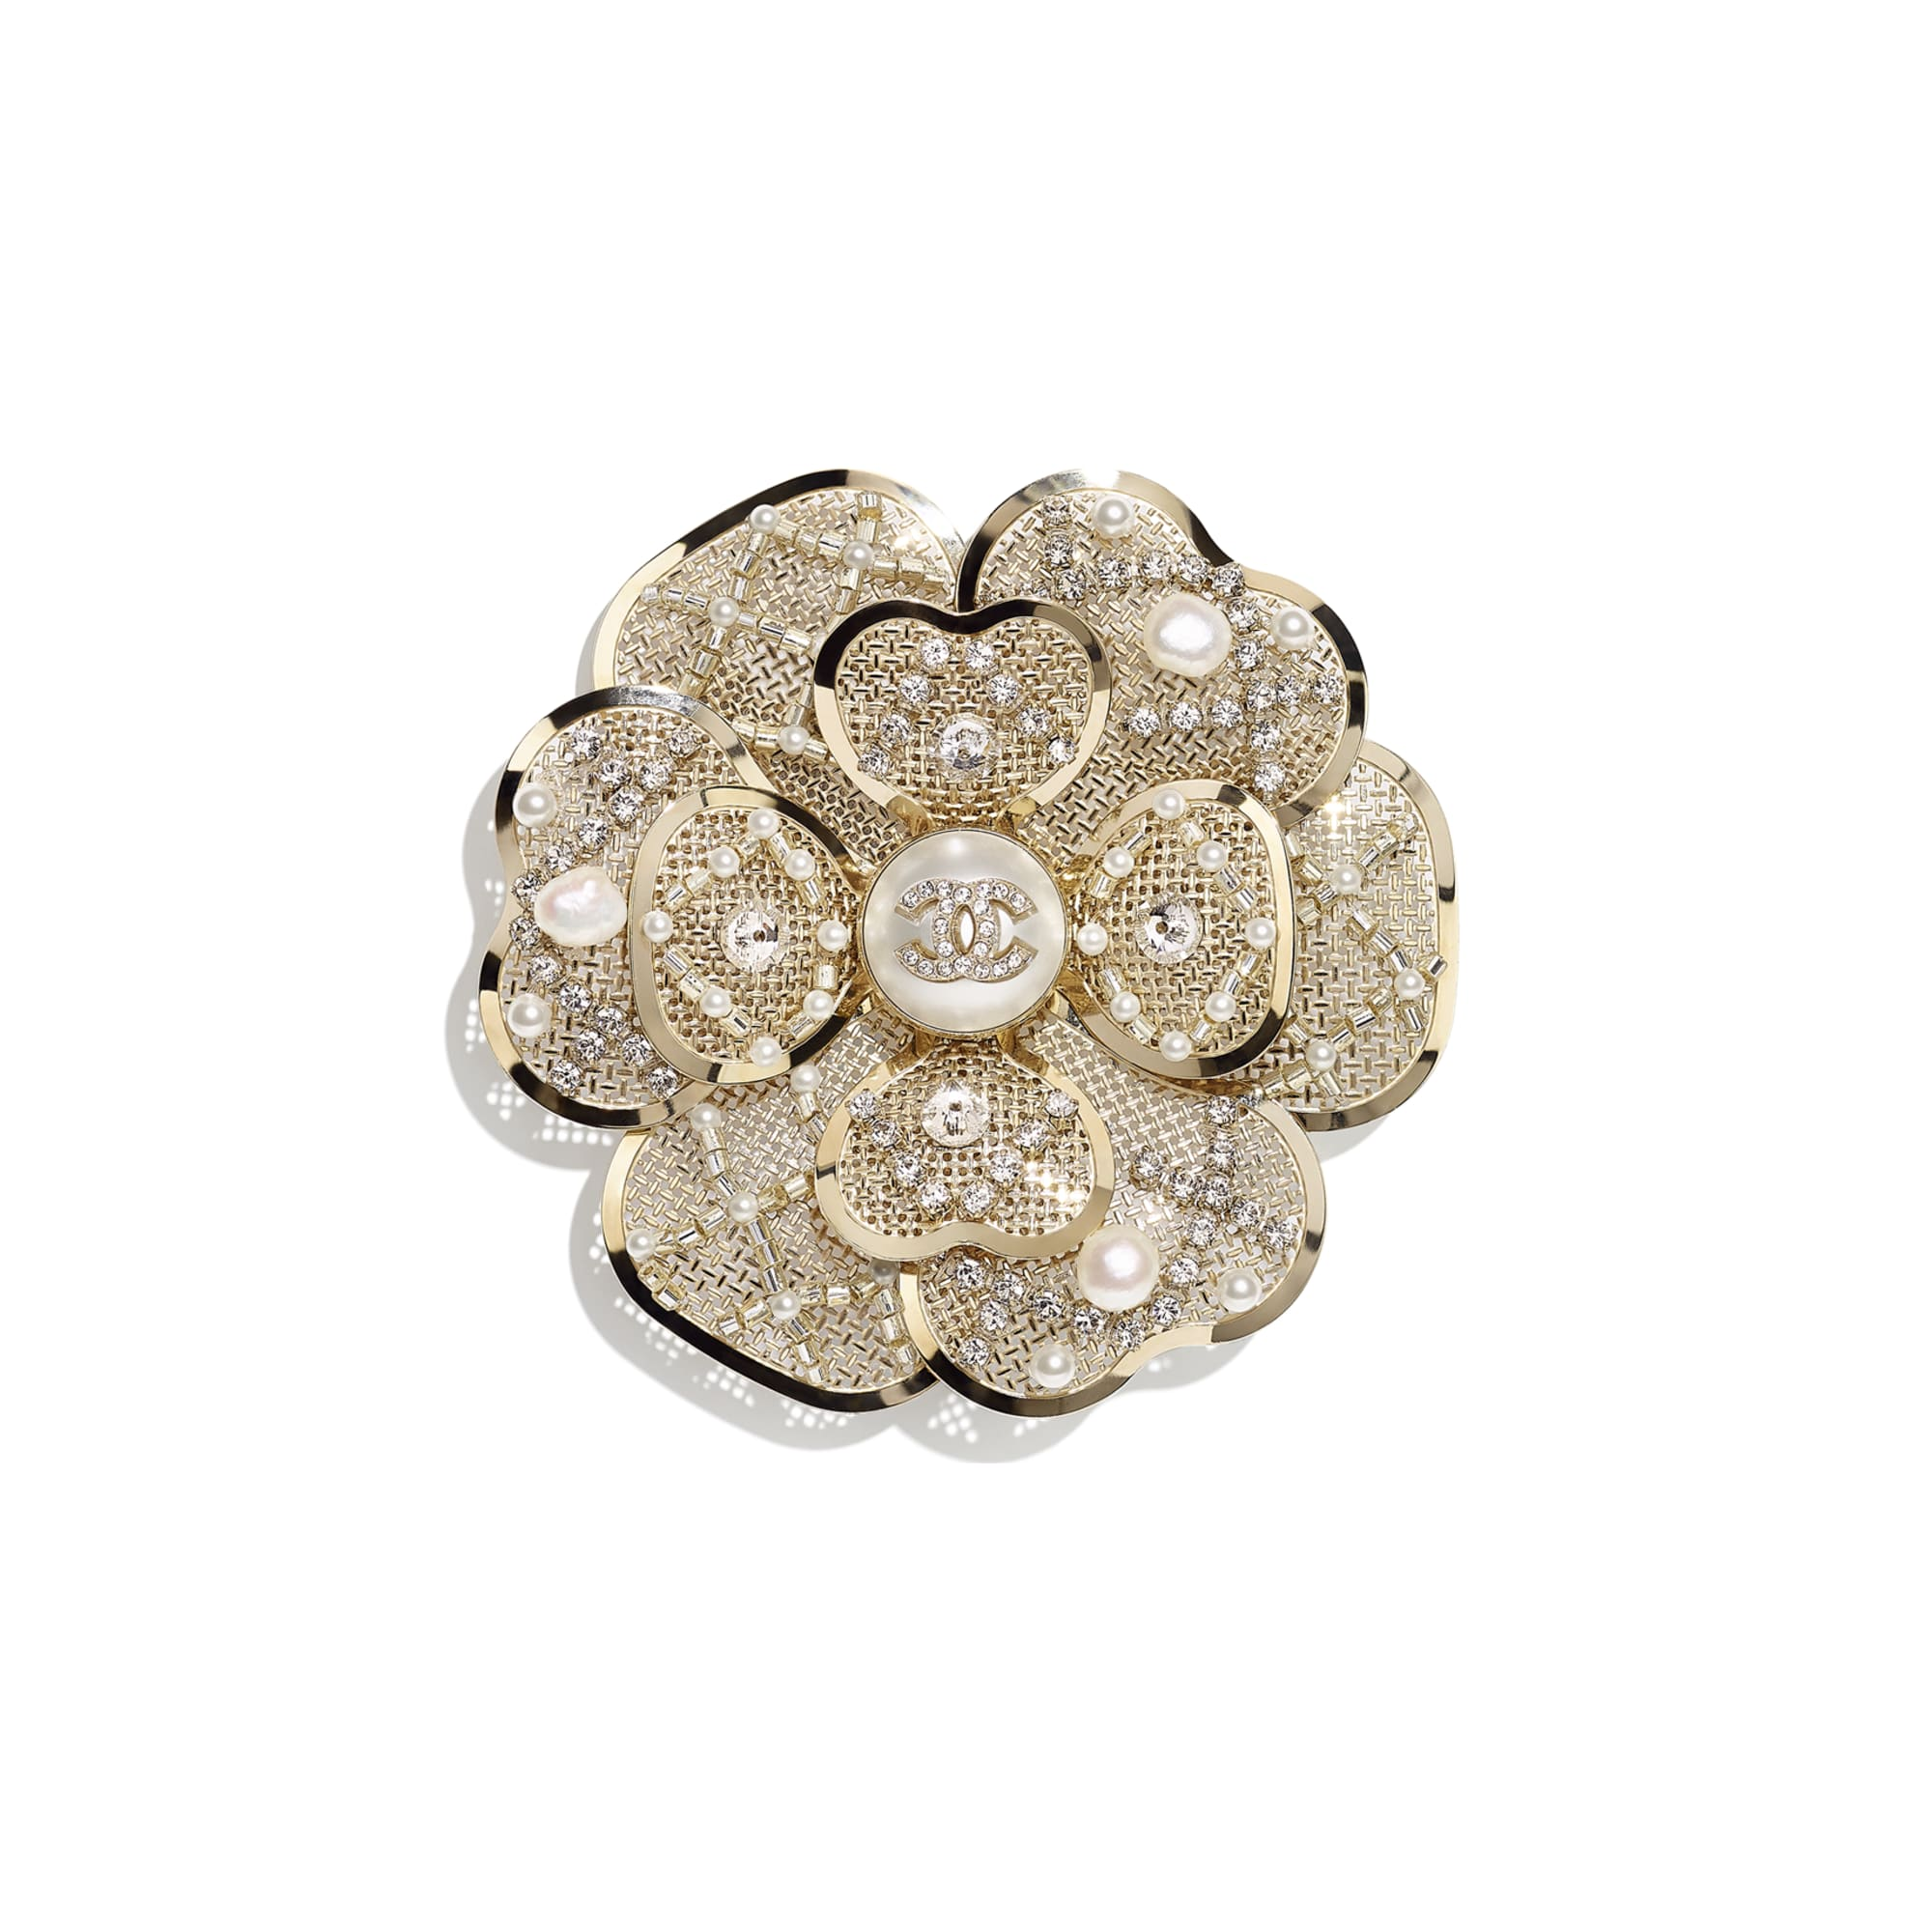 Brooch - Gold, Pearly White & Crystal - Metal, Cultured Fresh Water Pearls, Glass Pearls, Imitation Pearls & Diamanté - CHANEL - Default view - see standard sized version